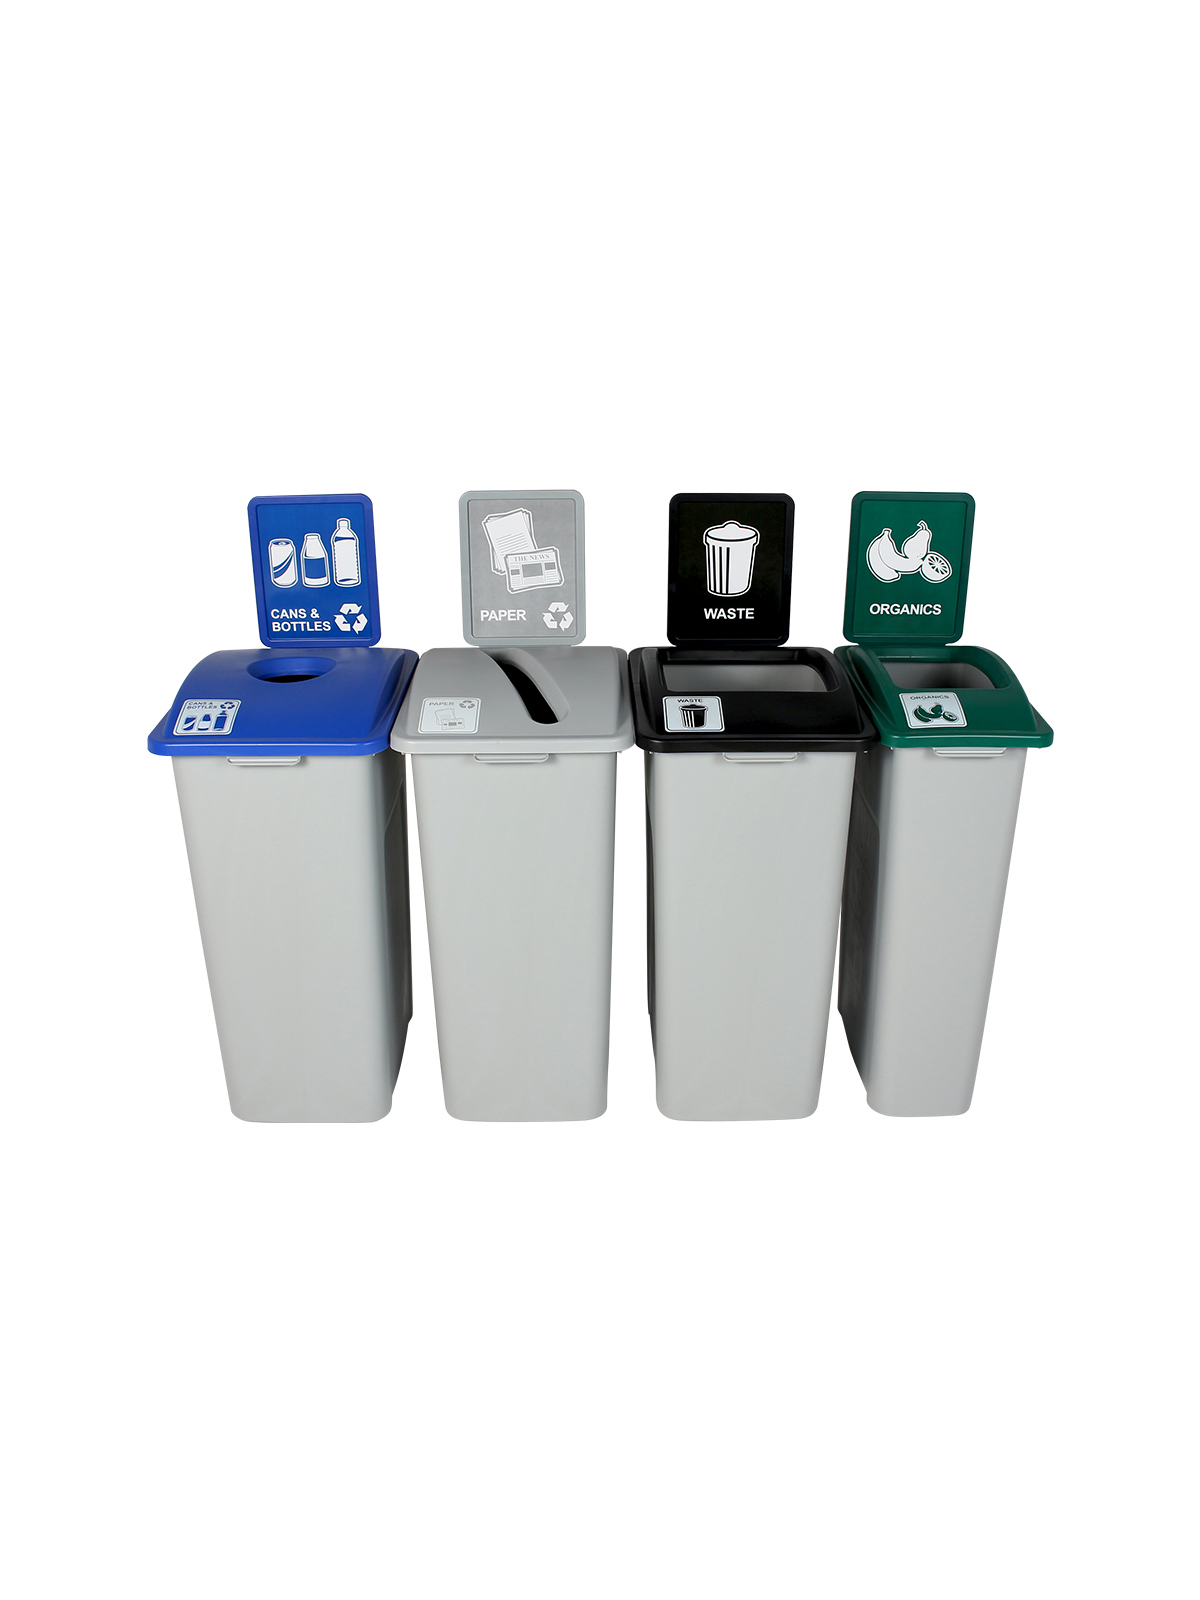 WASTE WATCHER XL - Quad - Cans & Bottles-Paper-Organics-Waste - Circle-Slot-Full - Grey-Blue-Grey-Green-Black